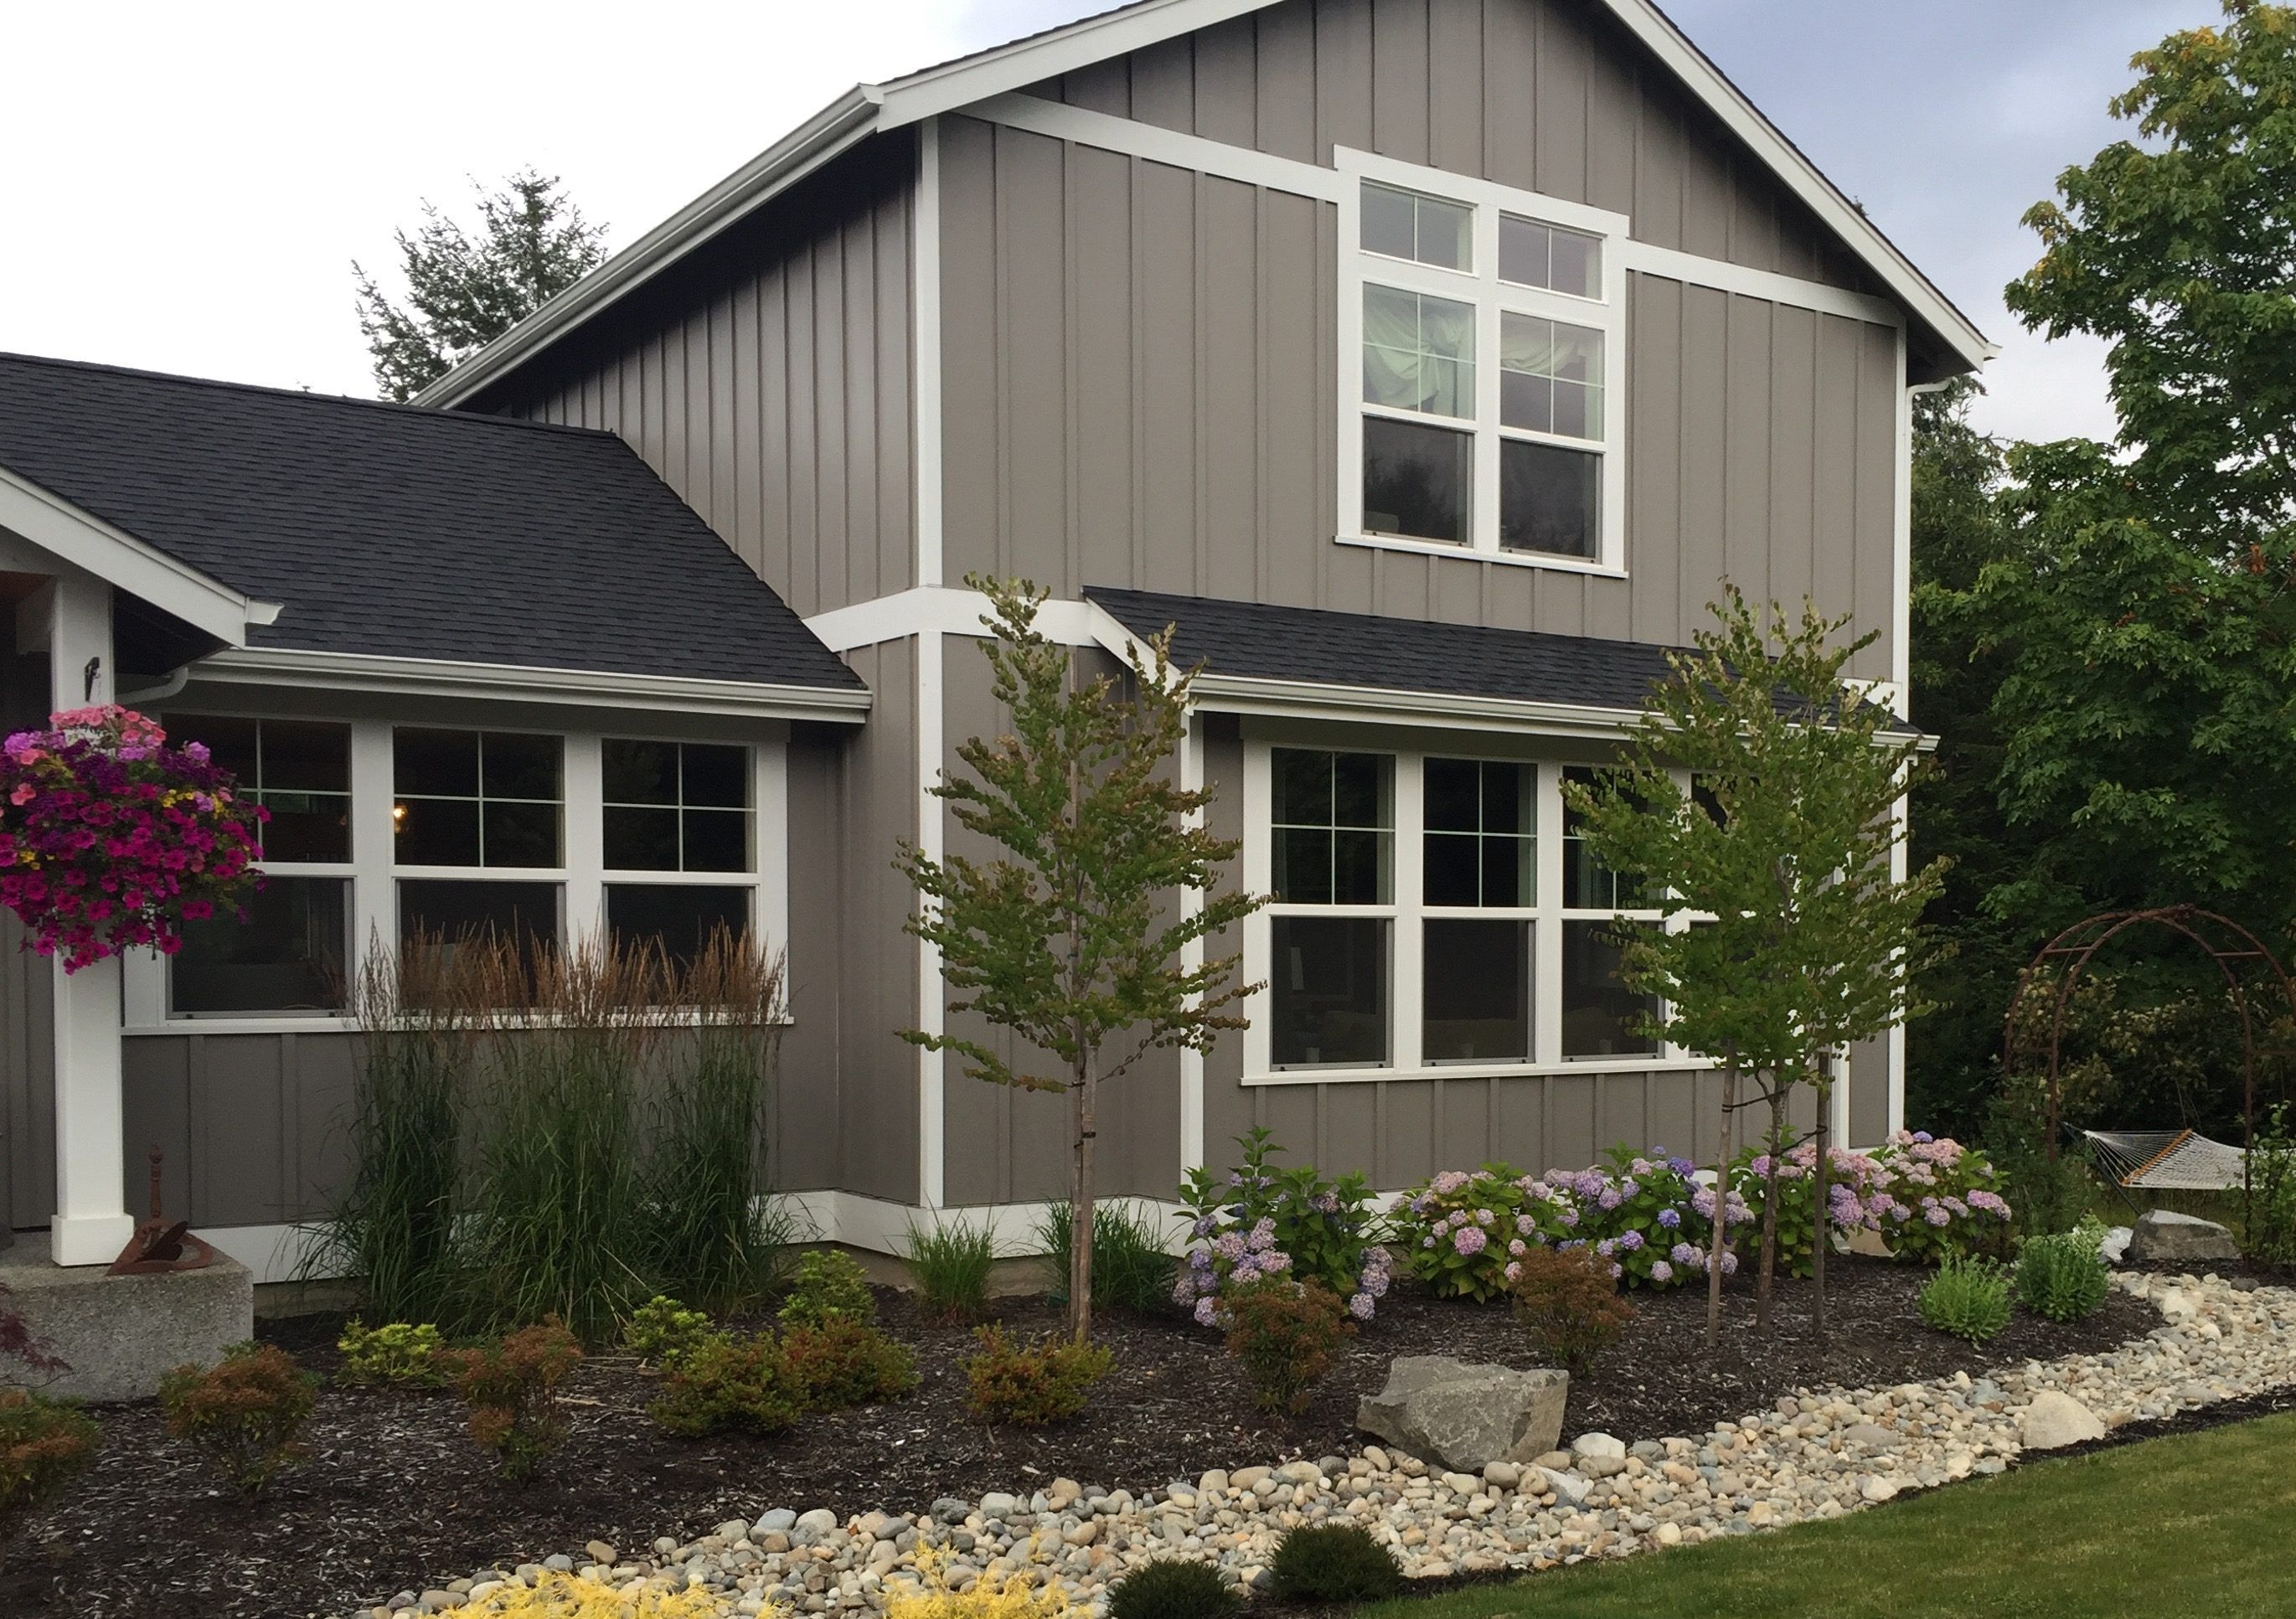 T 111 With Furring Strips Exterior Siding Options Siding Options Modern Siding Options